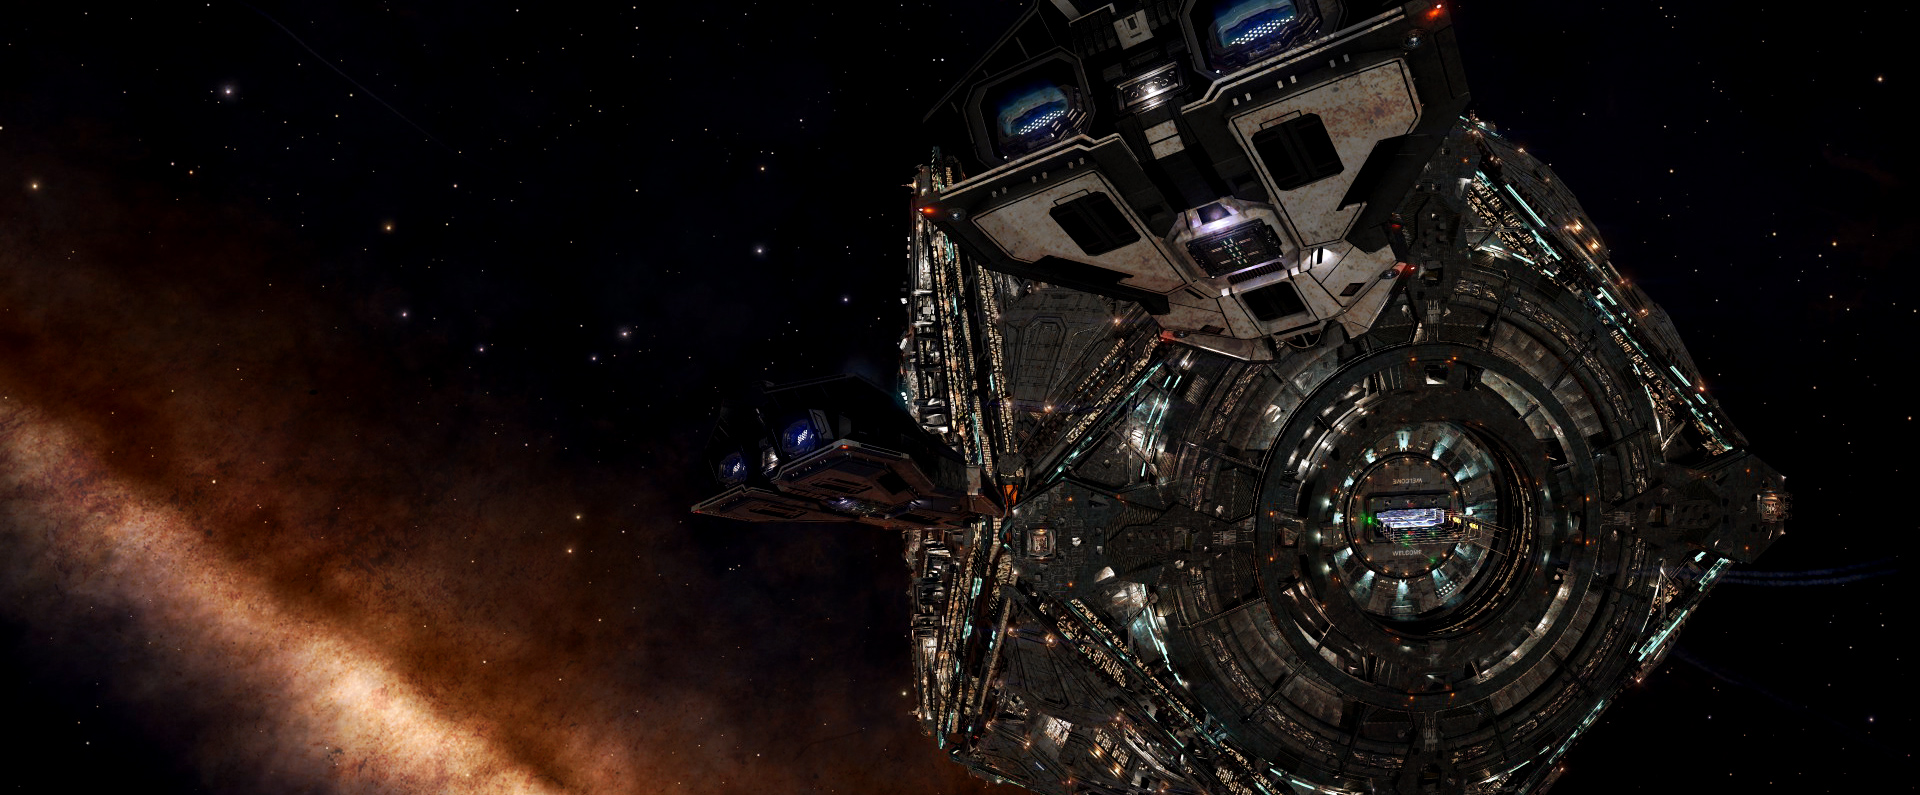 black Birds missions elite dangerous